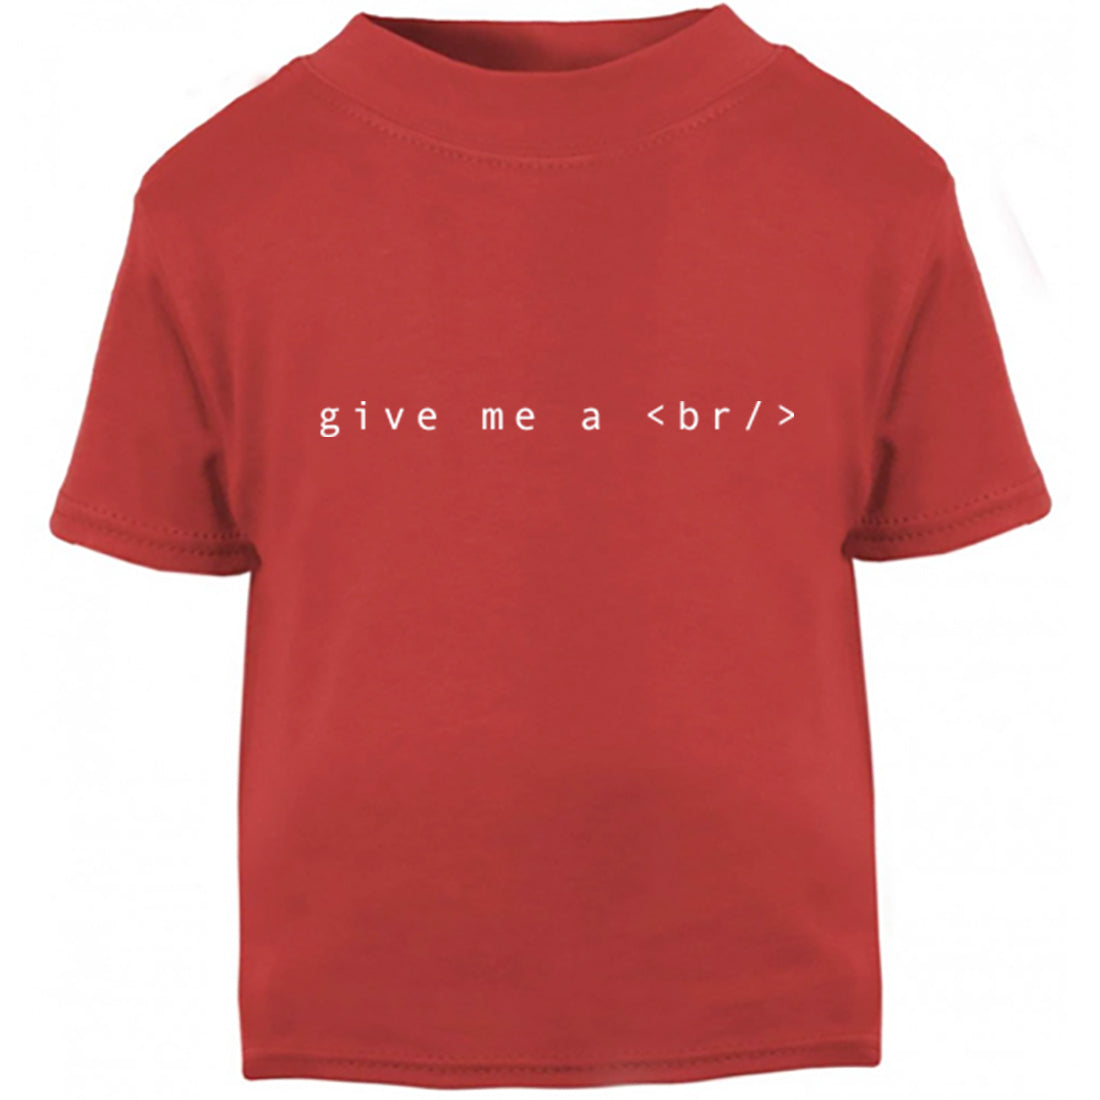 Give Me A Break Childrens Ages 3/4-12/14 Unisex Fit T-Shirt K2435 - Illustrated Identity Ltd.